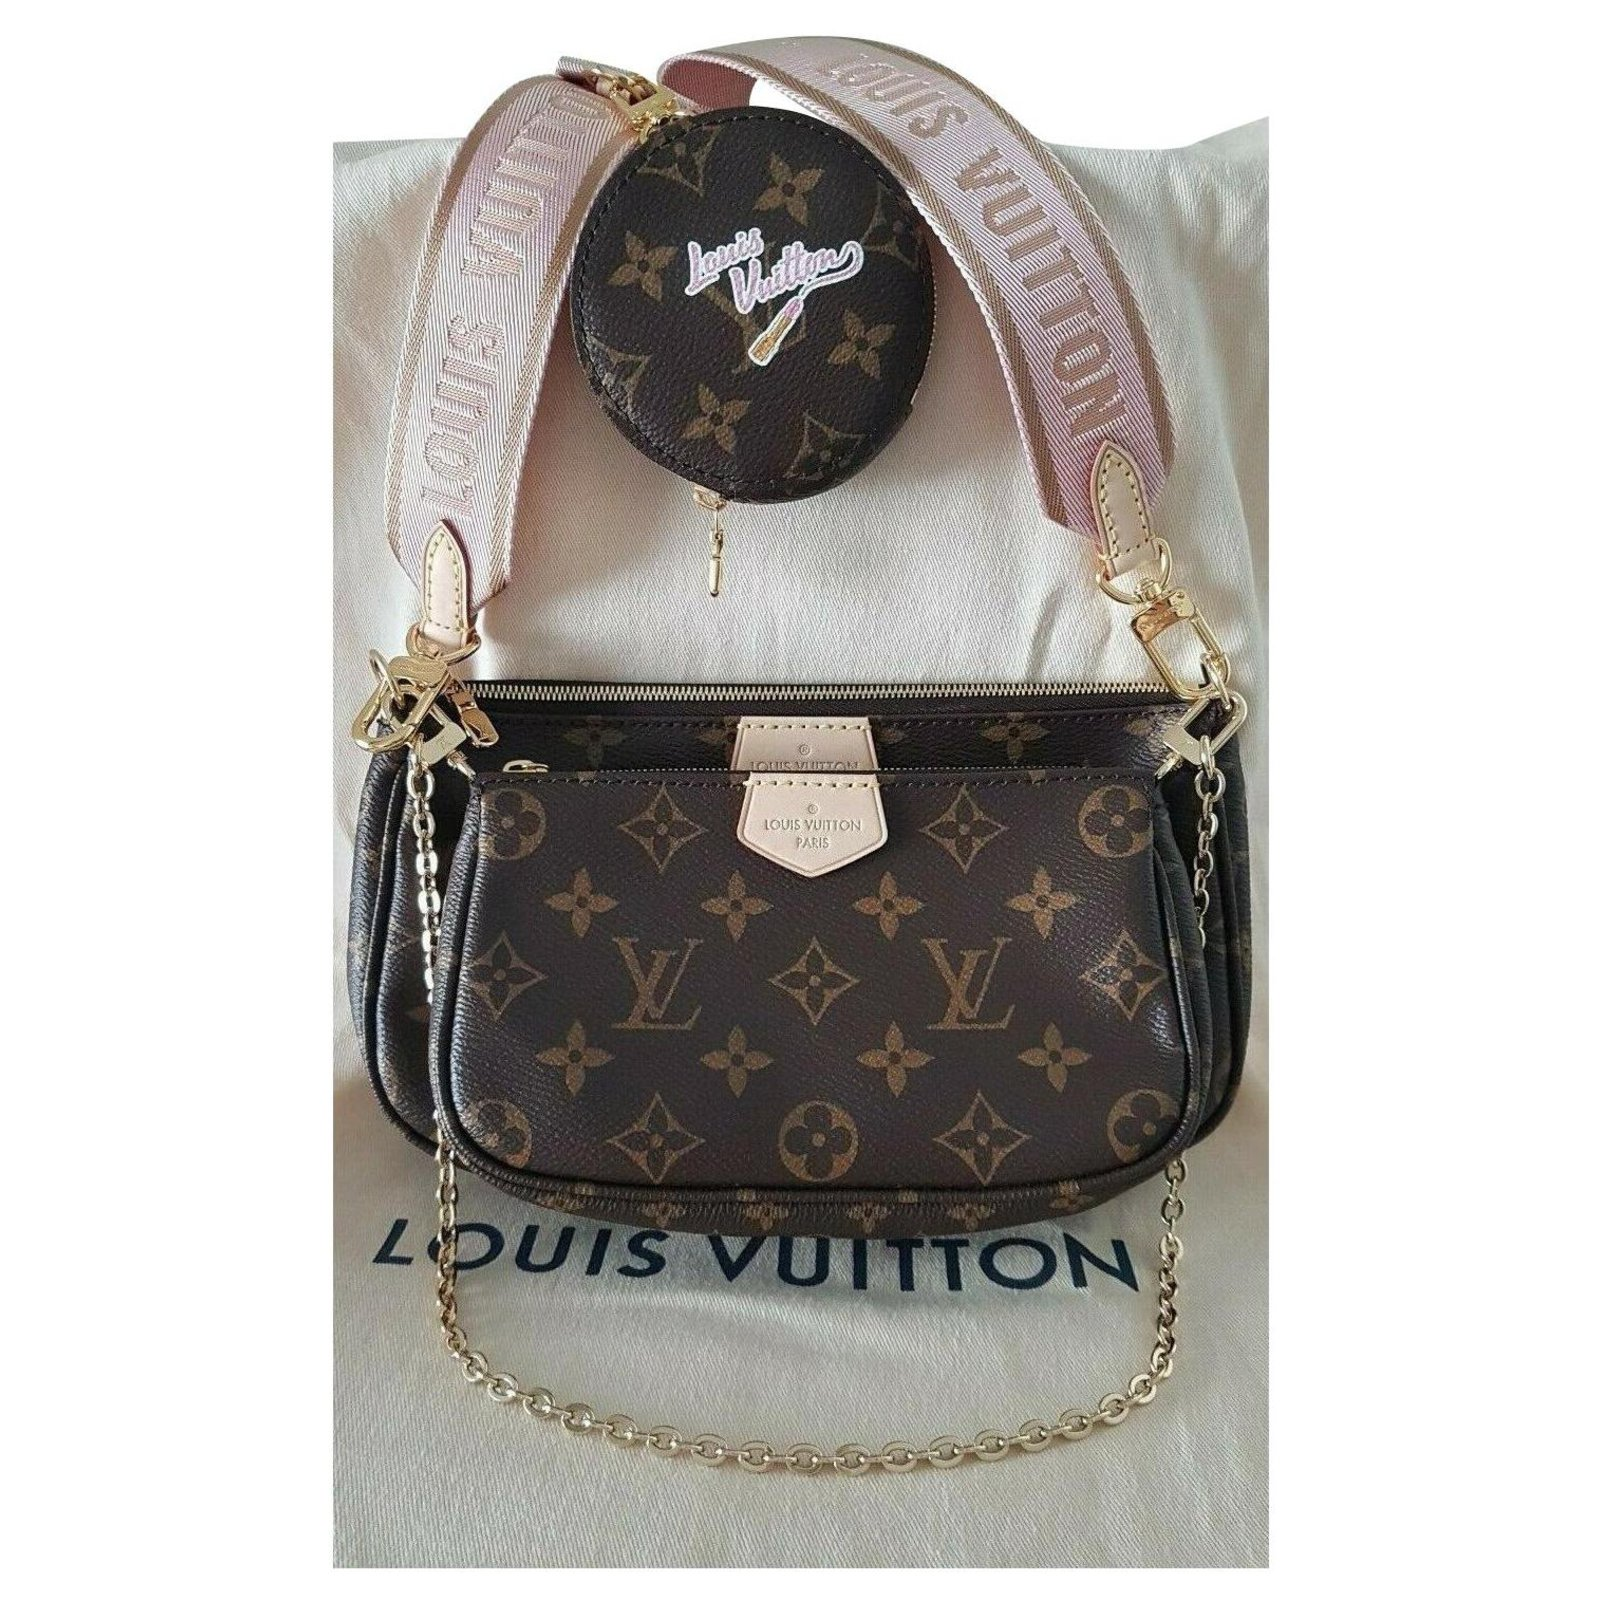 Louis Vuitton Louis Vuitton Multi Pochette Accessoires Monogram Clutch Bags Cloth Other Ref 225287 Joli Closet